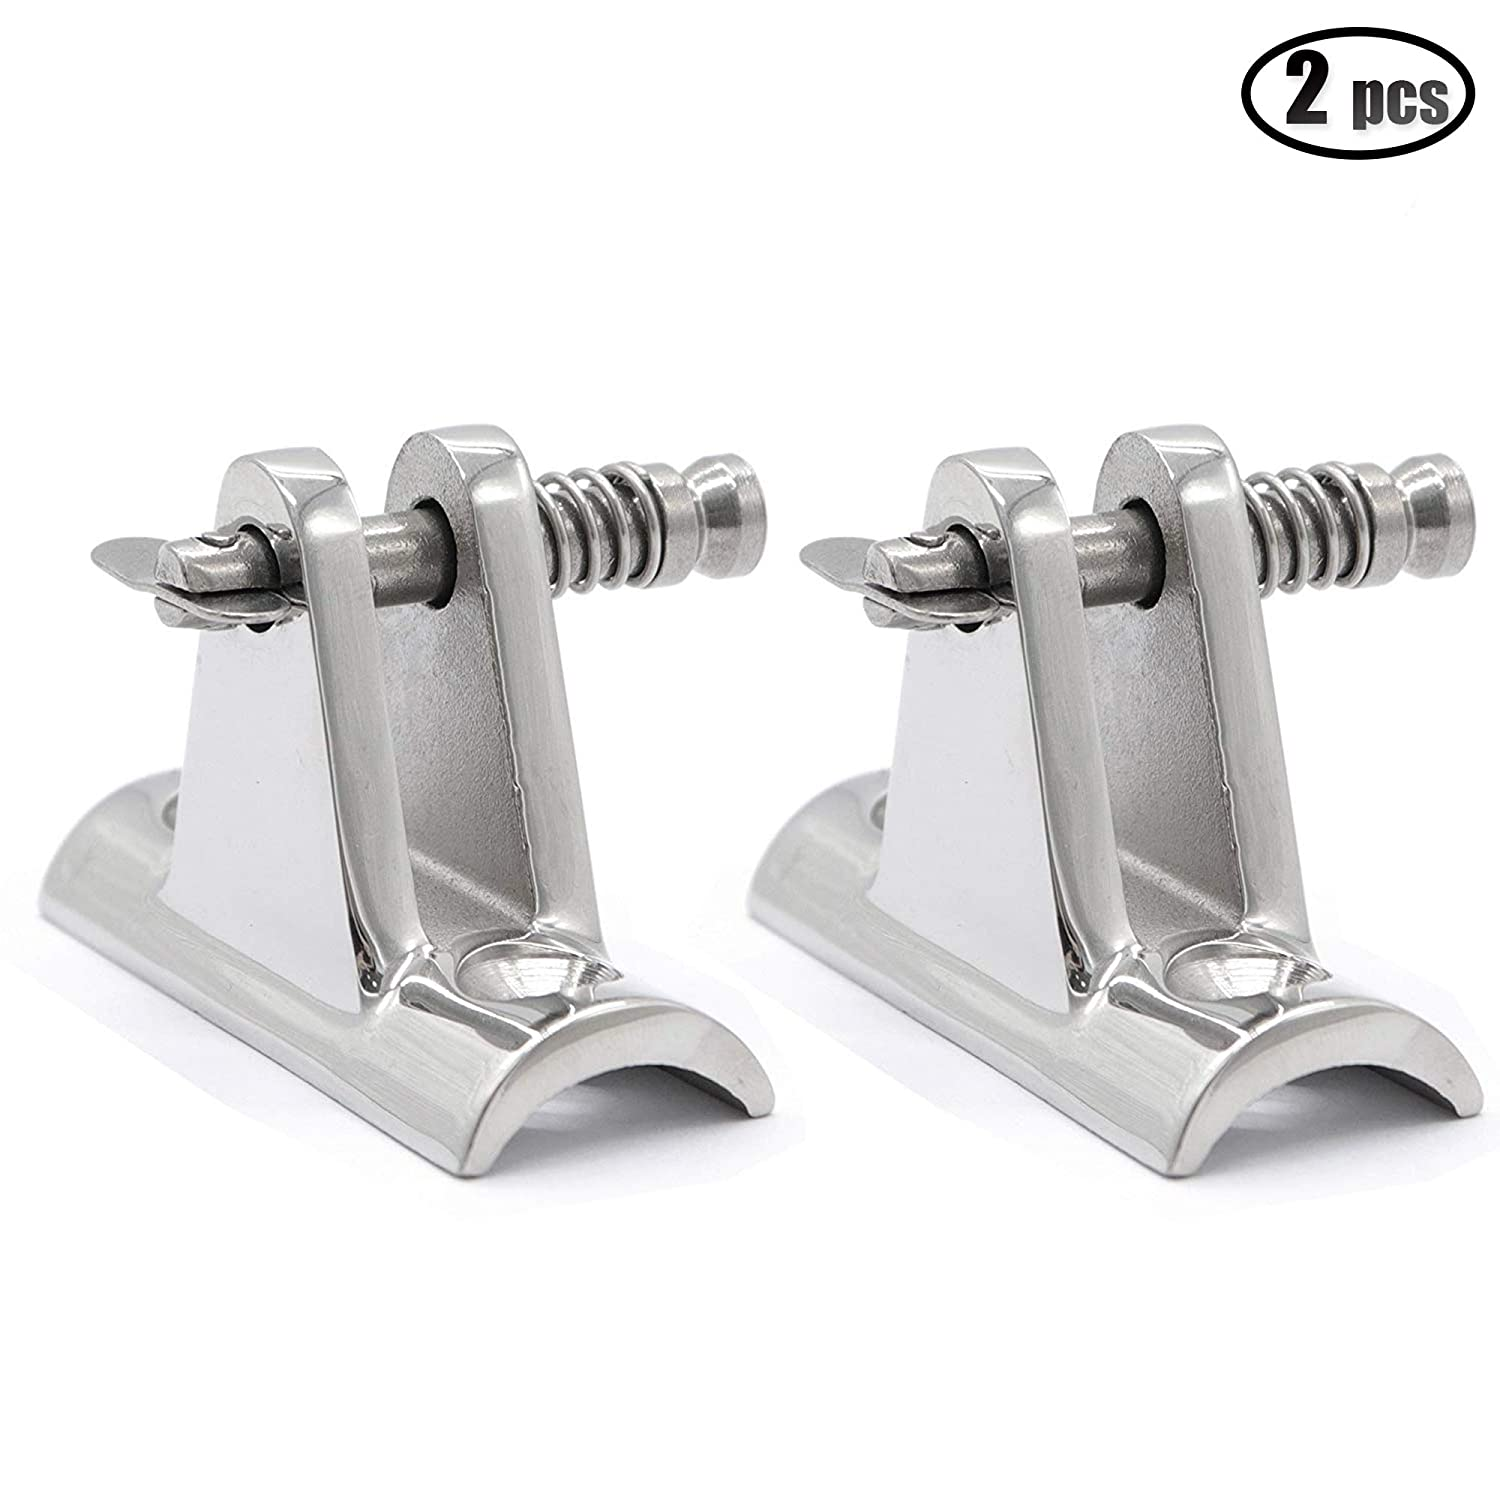 2PCS Boat Bimini Top Deck Hinges with Quick Pins Marine Stainless Steel iztor